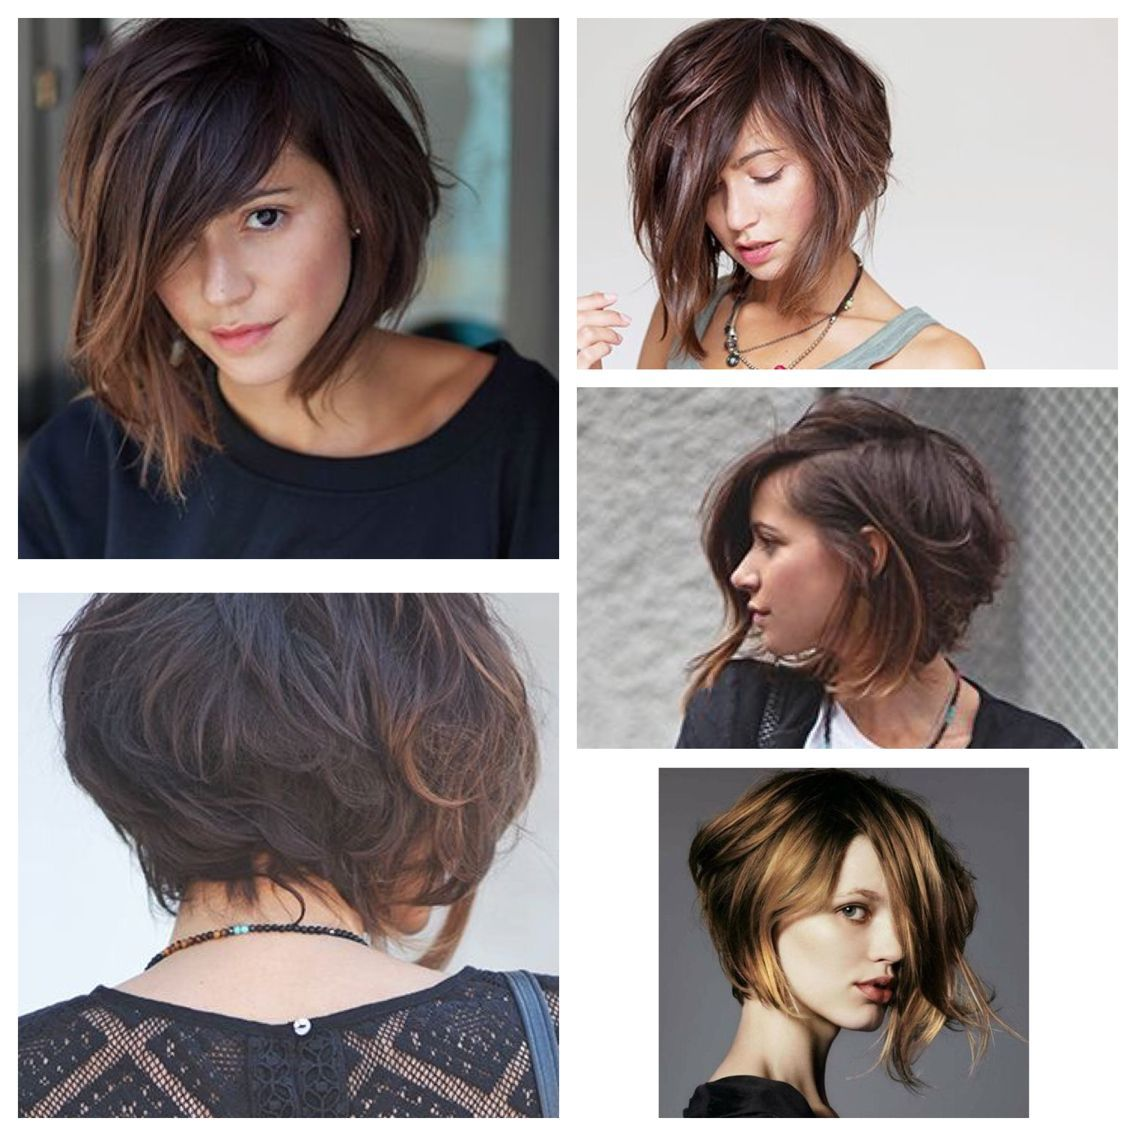 38 Short Layered Bob Haircuts With Side Swept Bangs That Make You Look Younger #shortlayeredhaircuts